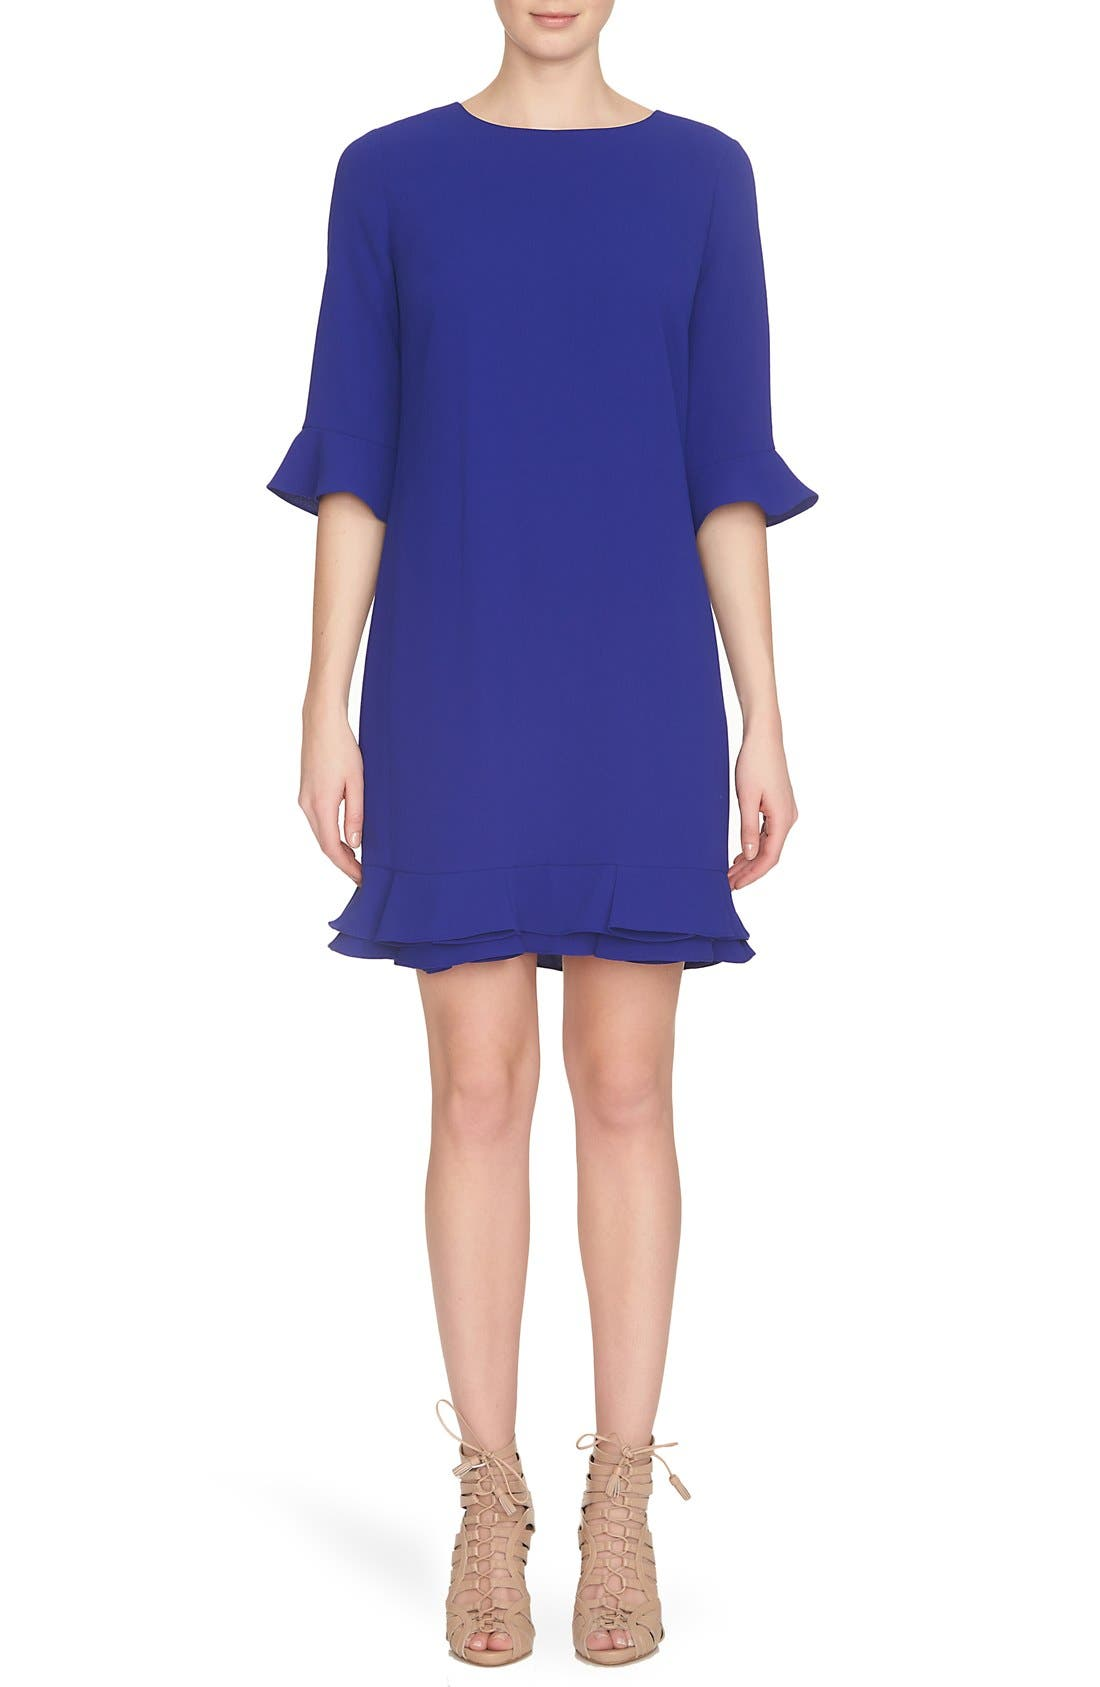 Alternate Image 1 Selected - CeCe 'Kate' Ruffle Hem Shift Dress (Regular & Petite)